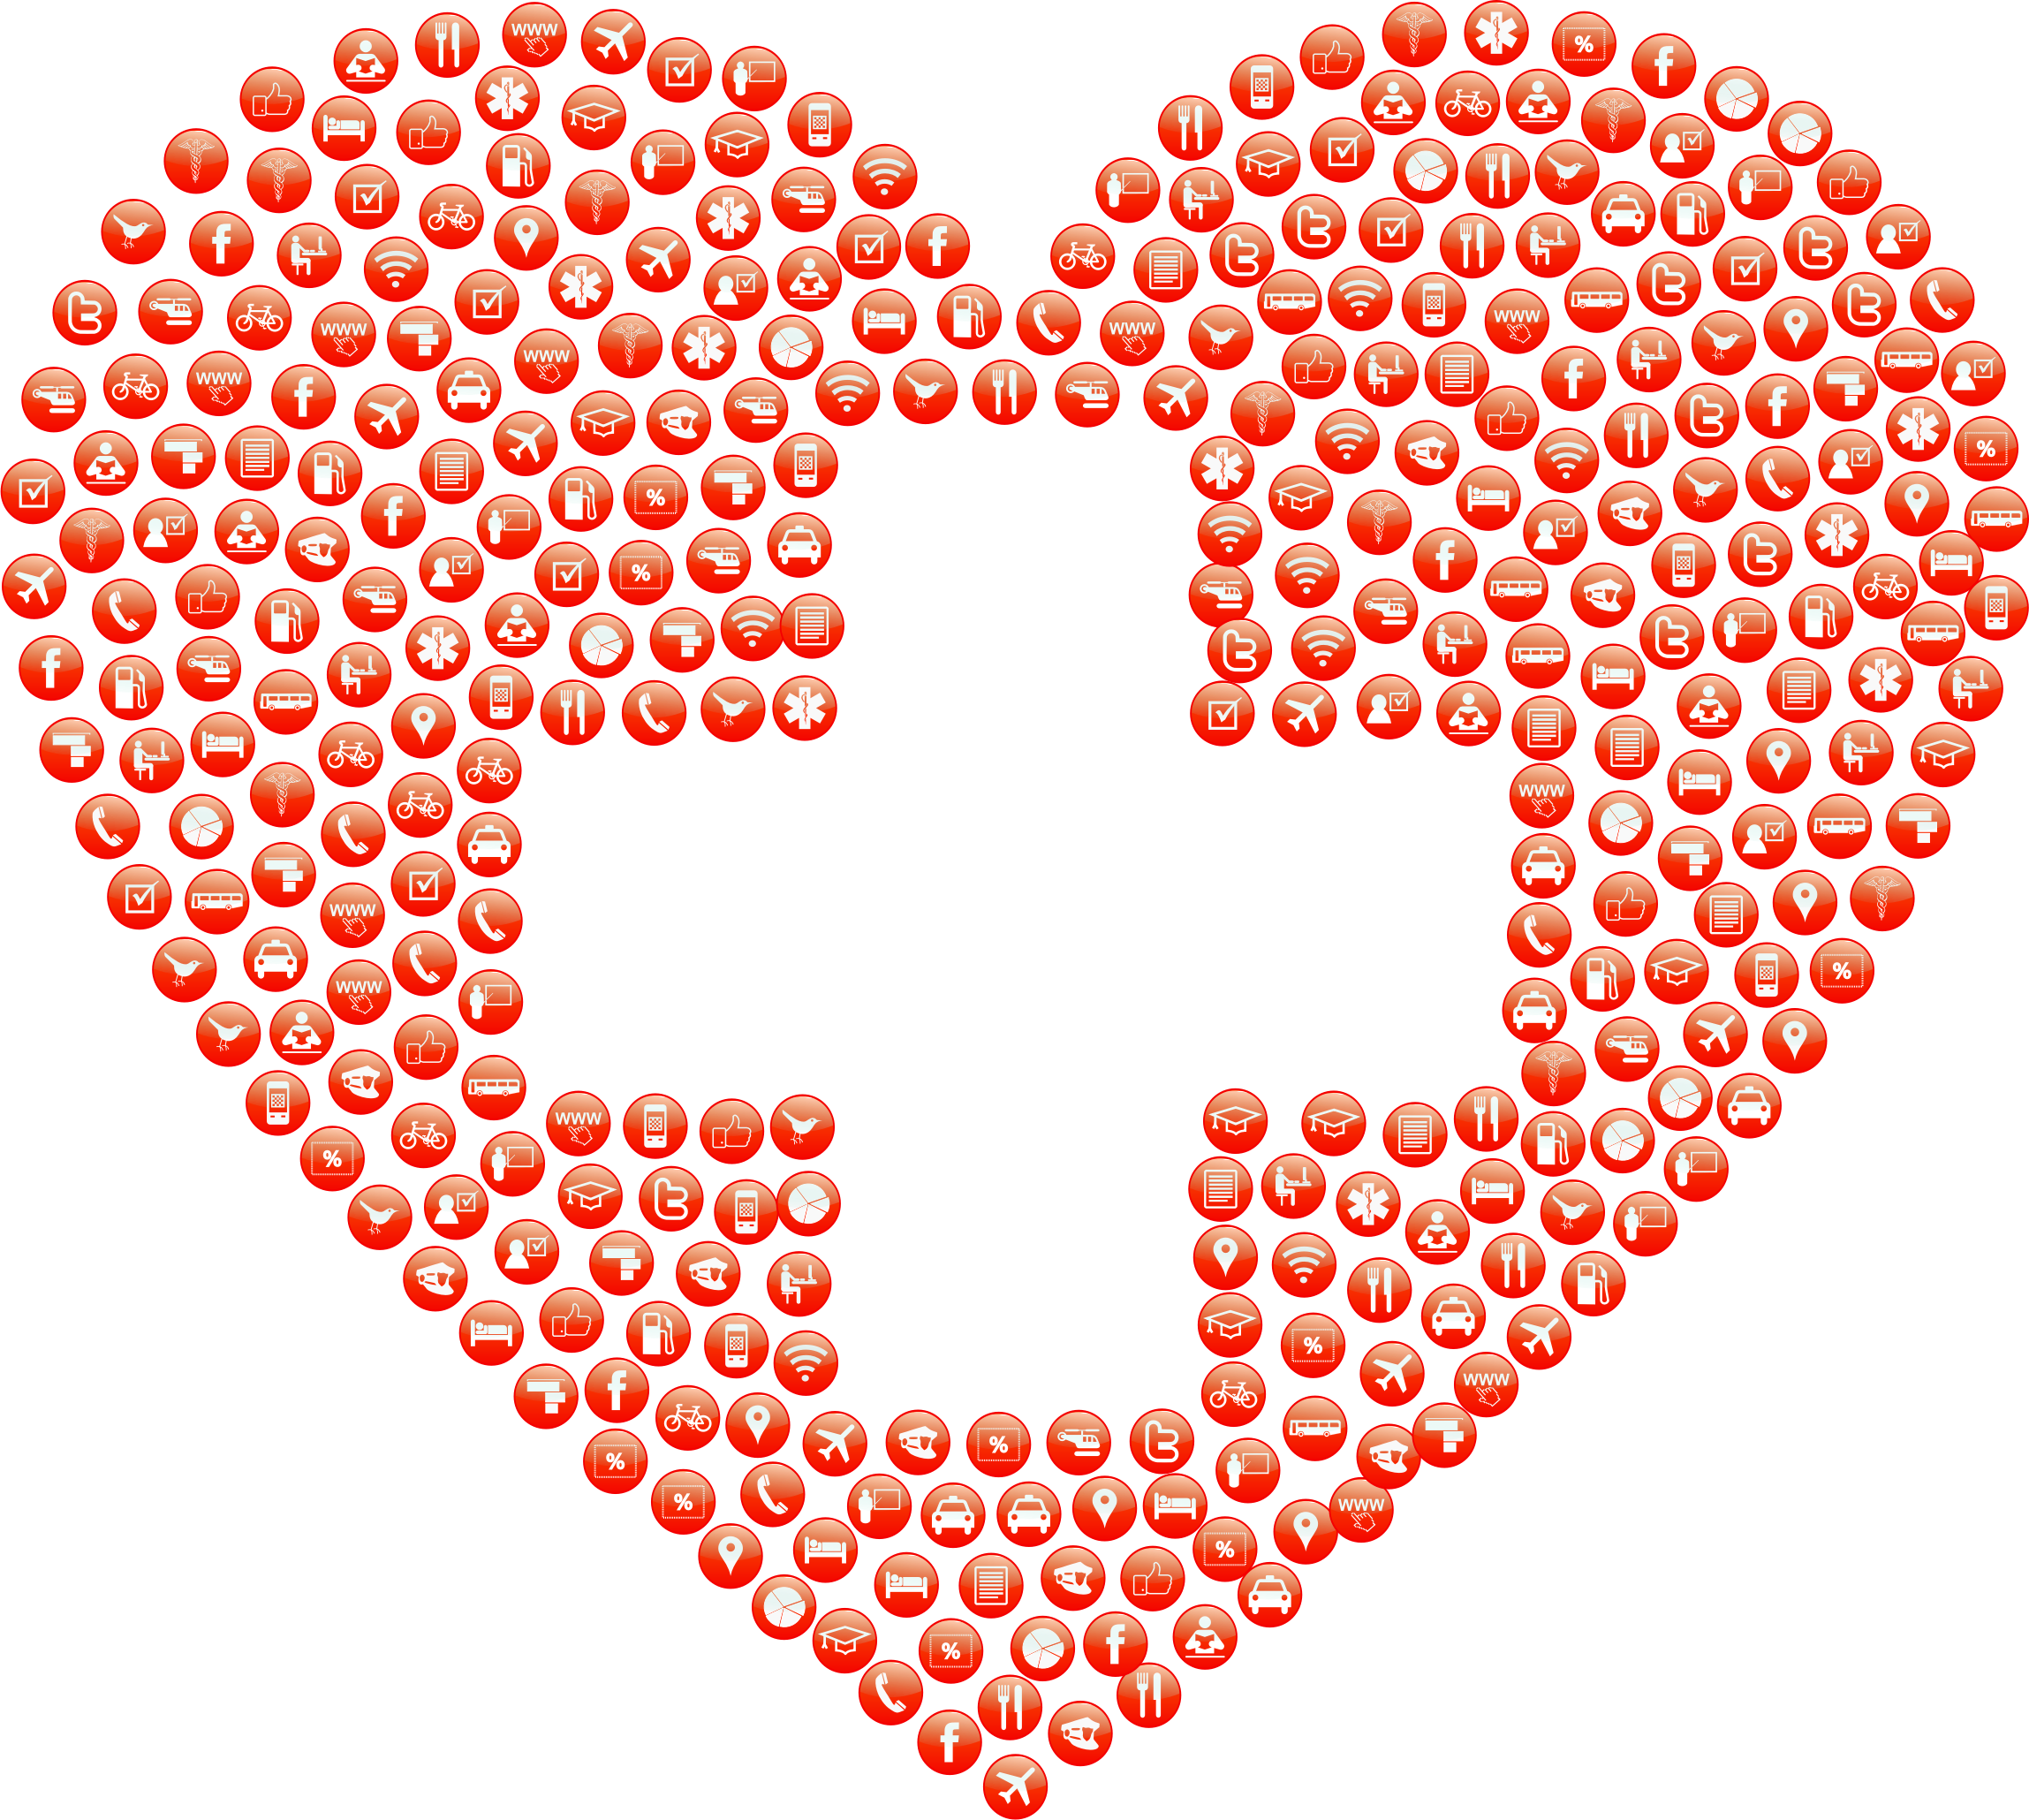 Aid heart icons big. Love clipart first love